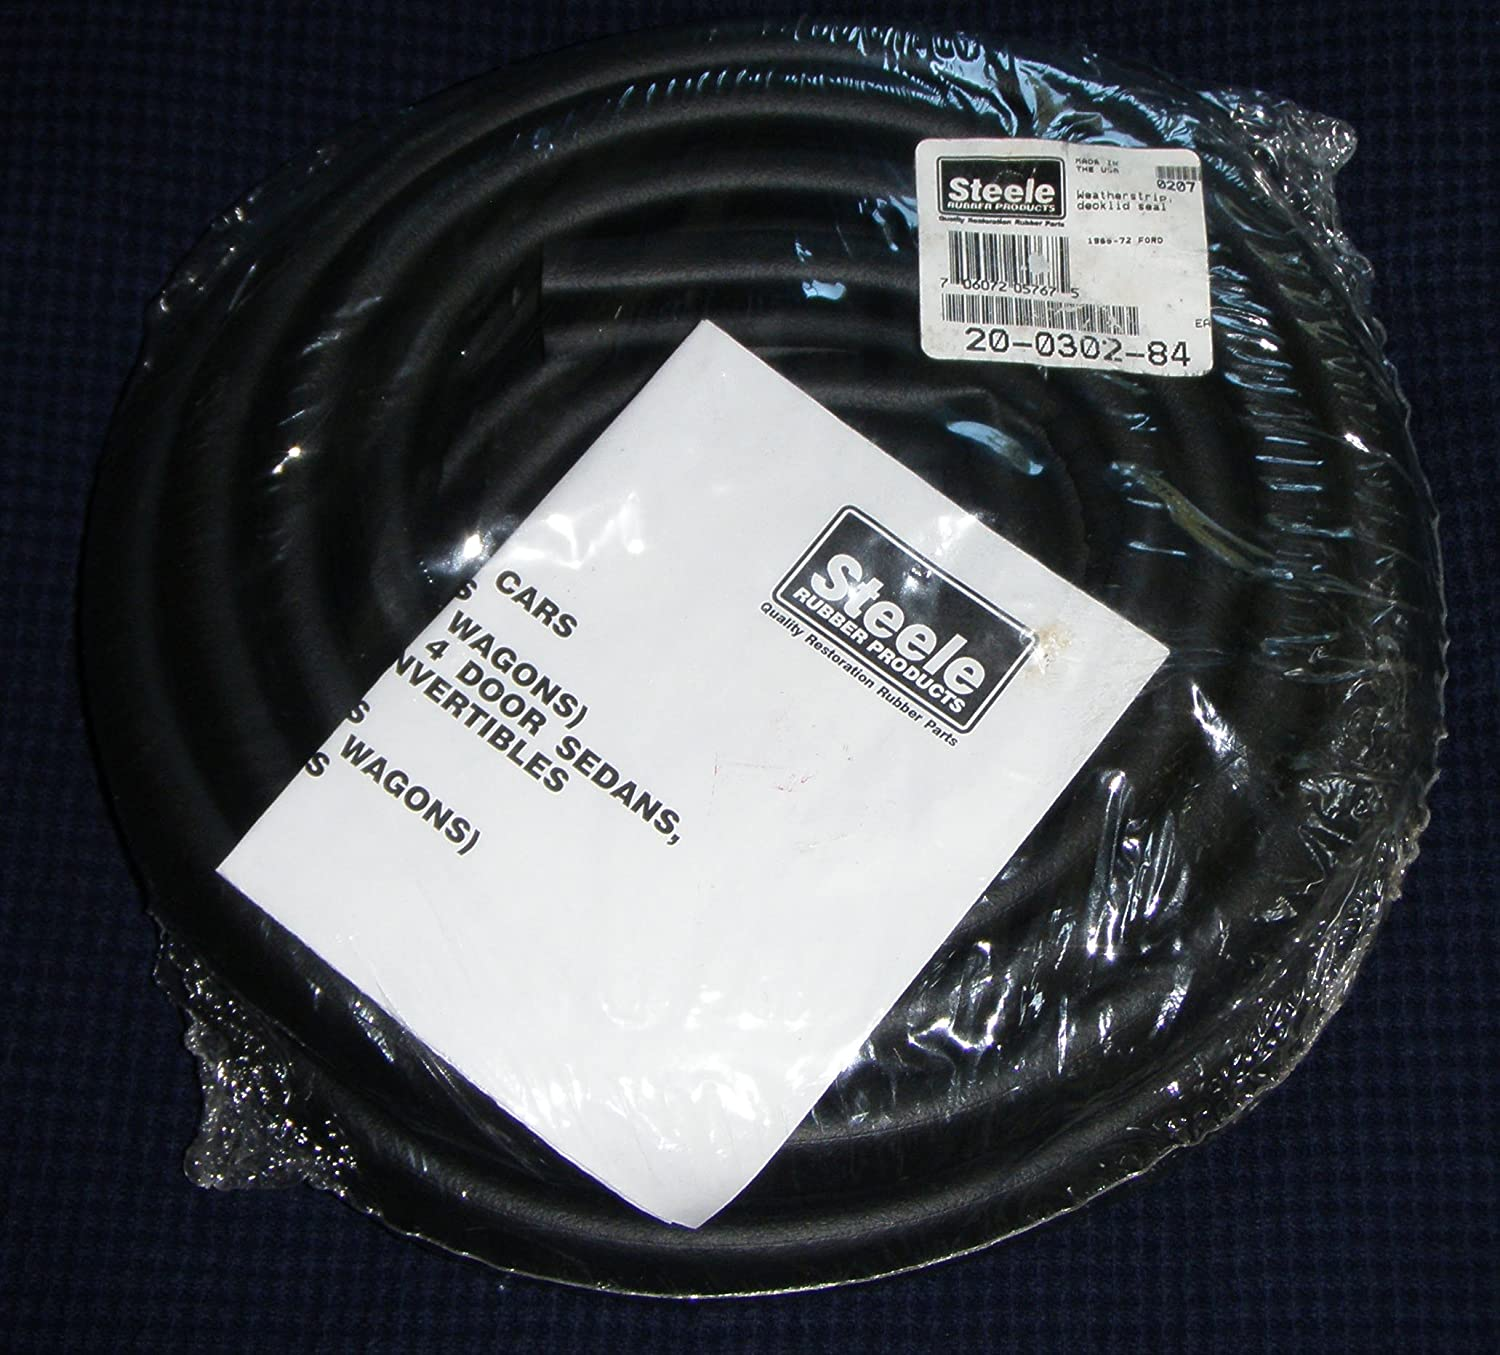 Steele Rubber Products 20-0302-84 Trunk Weatherstrip Seal